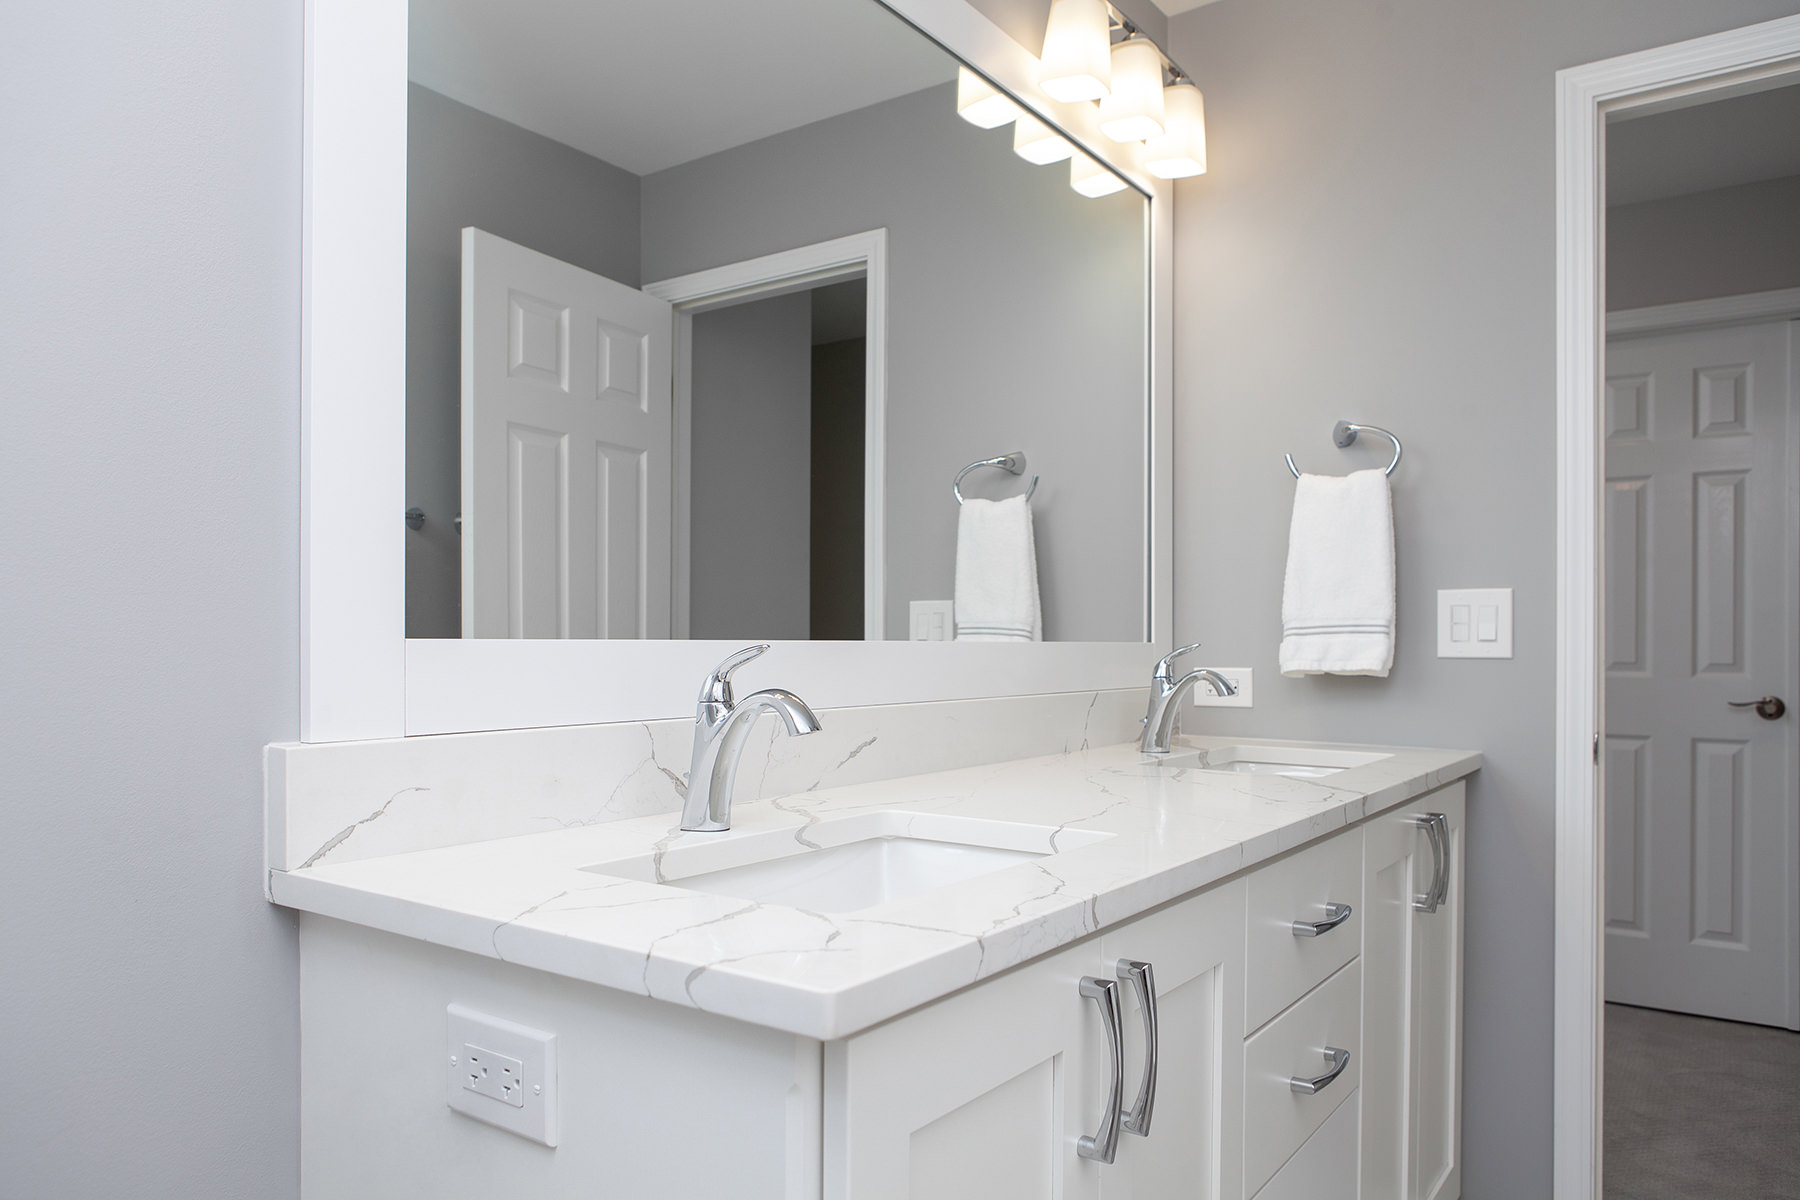 remodeled home bathroom with white cabinetry, light gray countertops and chrome finishes